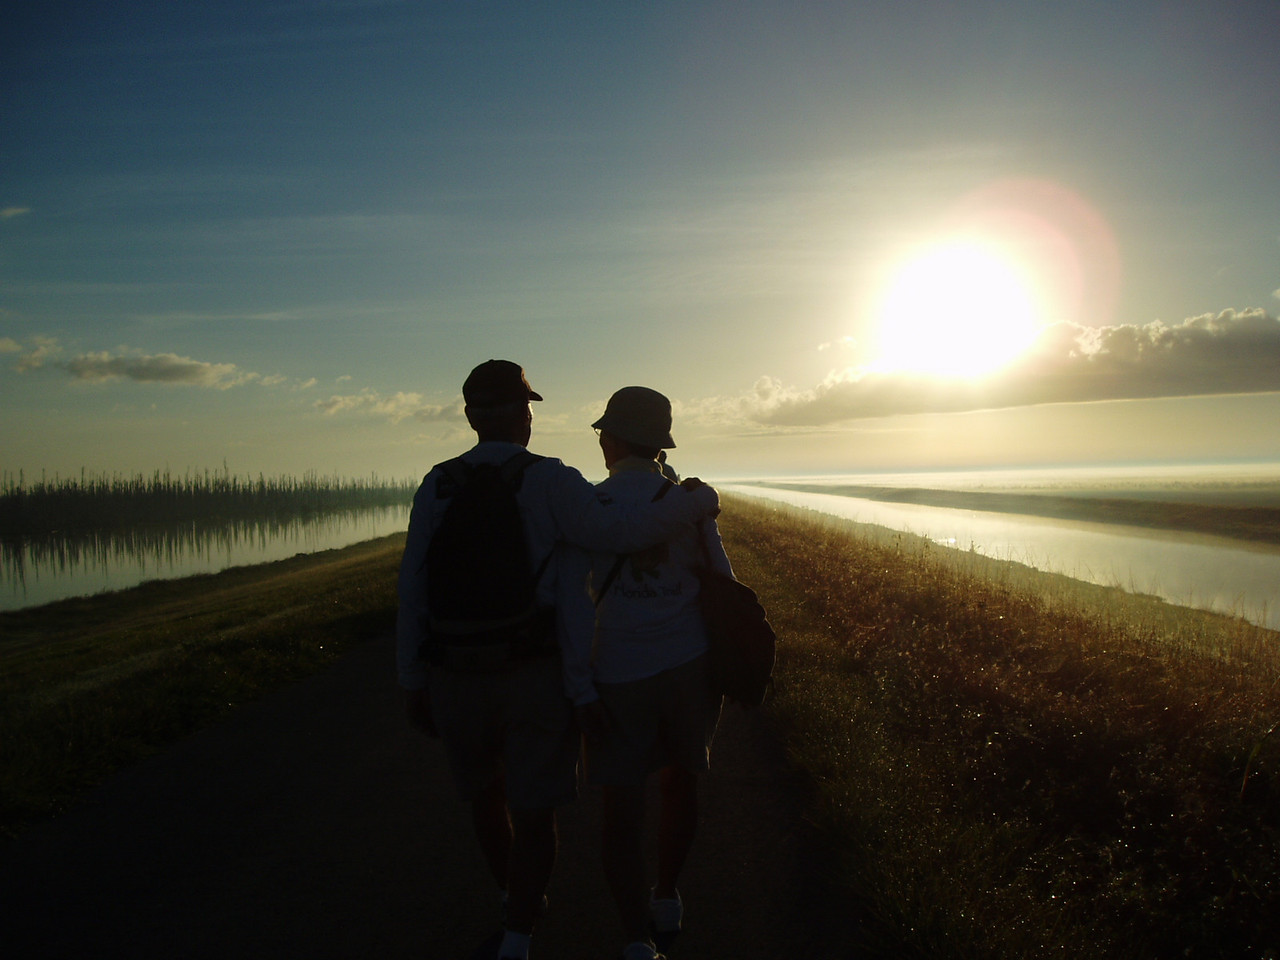 Hikers along the Rim Canal, Moore Haven<br /> PHOTO CREDIT: Robert Coveney / Florida Trail Association